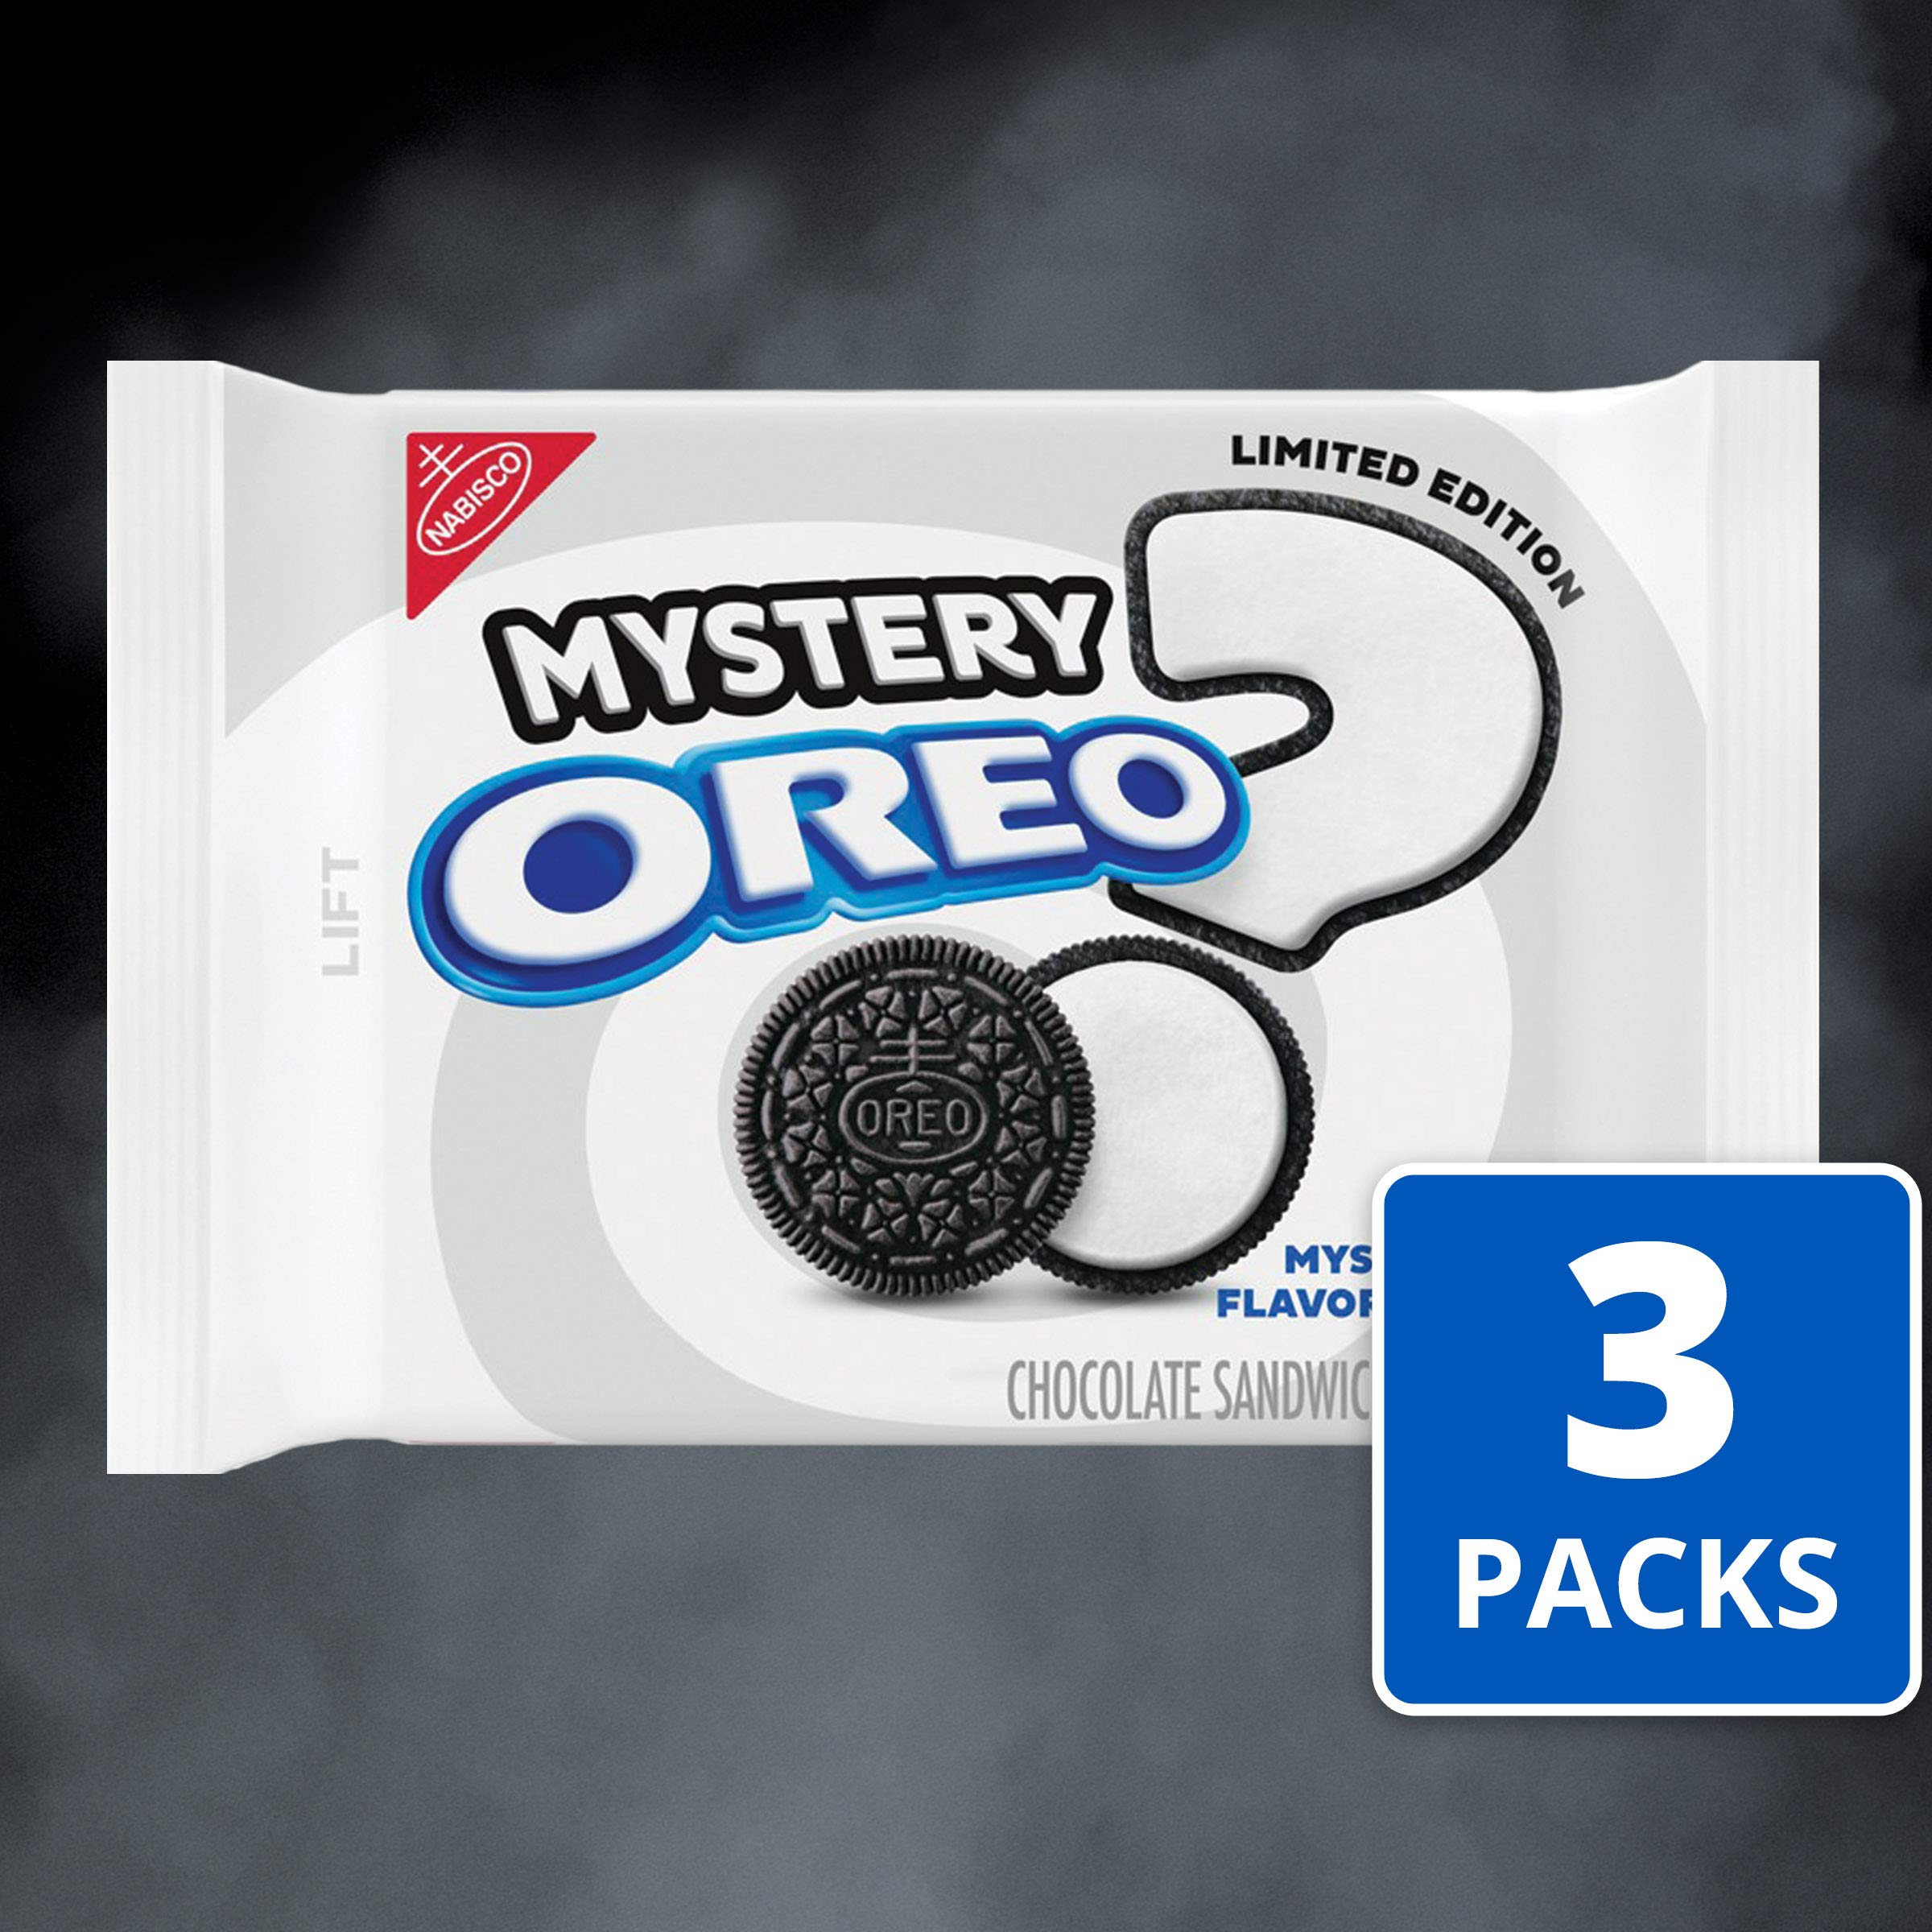 Oreo Chocolate Sandwich Cookies, Limited Edition Mystery Flavor Creme, 3 Resealable Pack (12.2 Ounce .), 3Count by Oreo